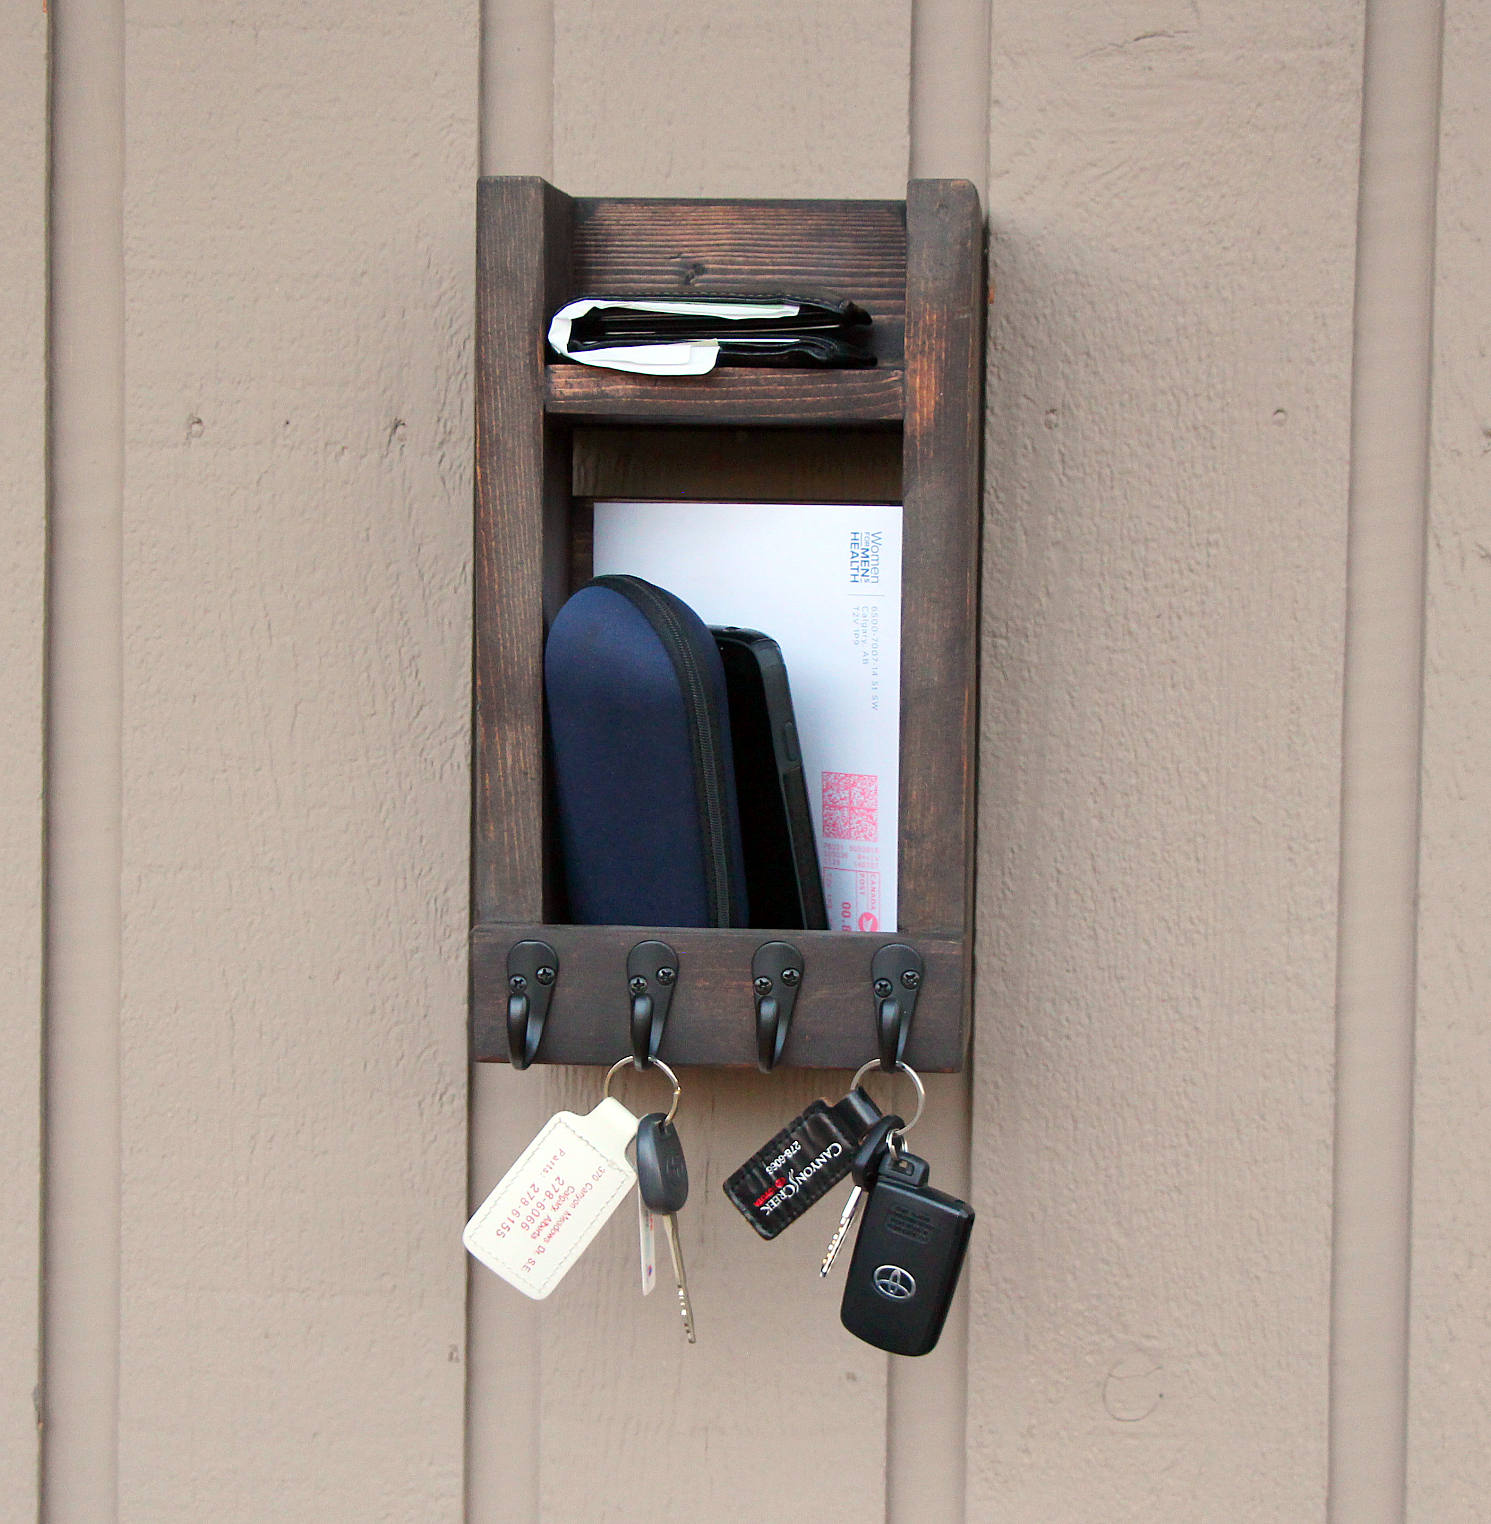 Hanging Mail And Key Organizer Buy Entryway Key Holder For Wall Up To 20 Key Hooks Mail